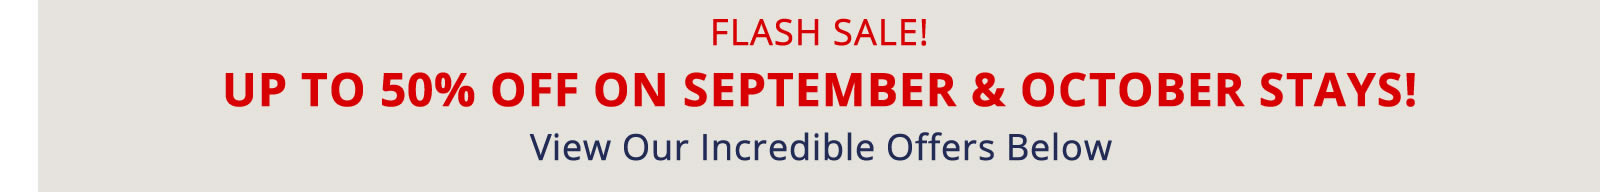 FLASH SALE! UP TO 50% OFF SEPTEMBER AND OCTOBER STAYS!